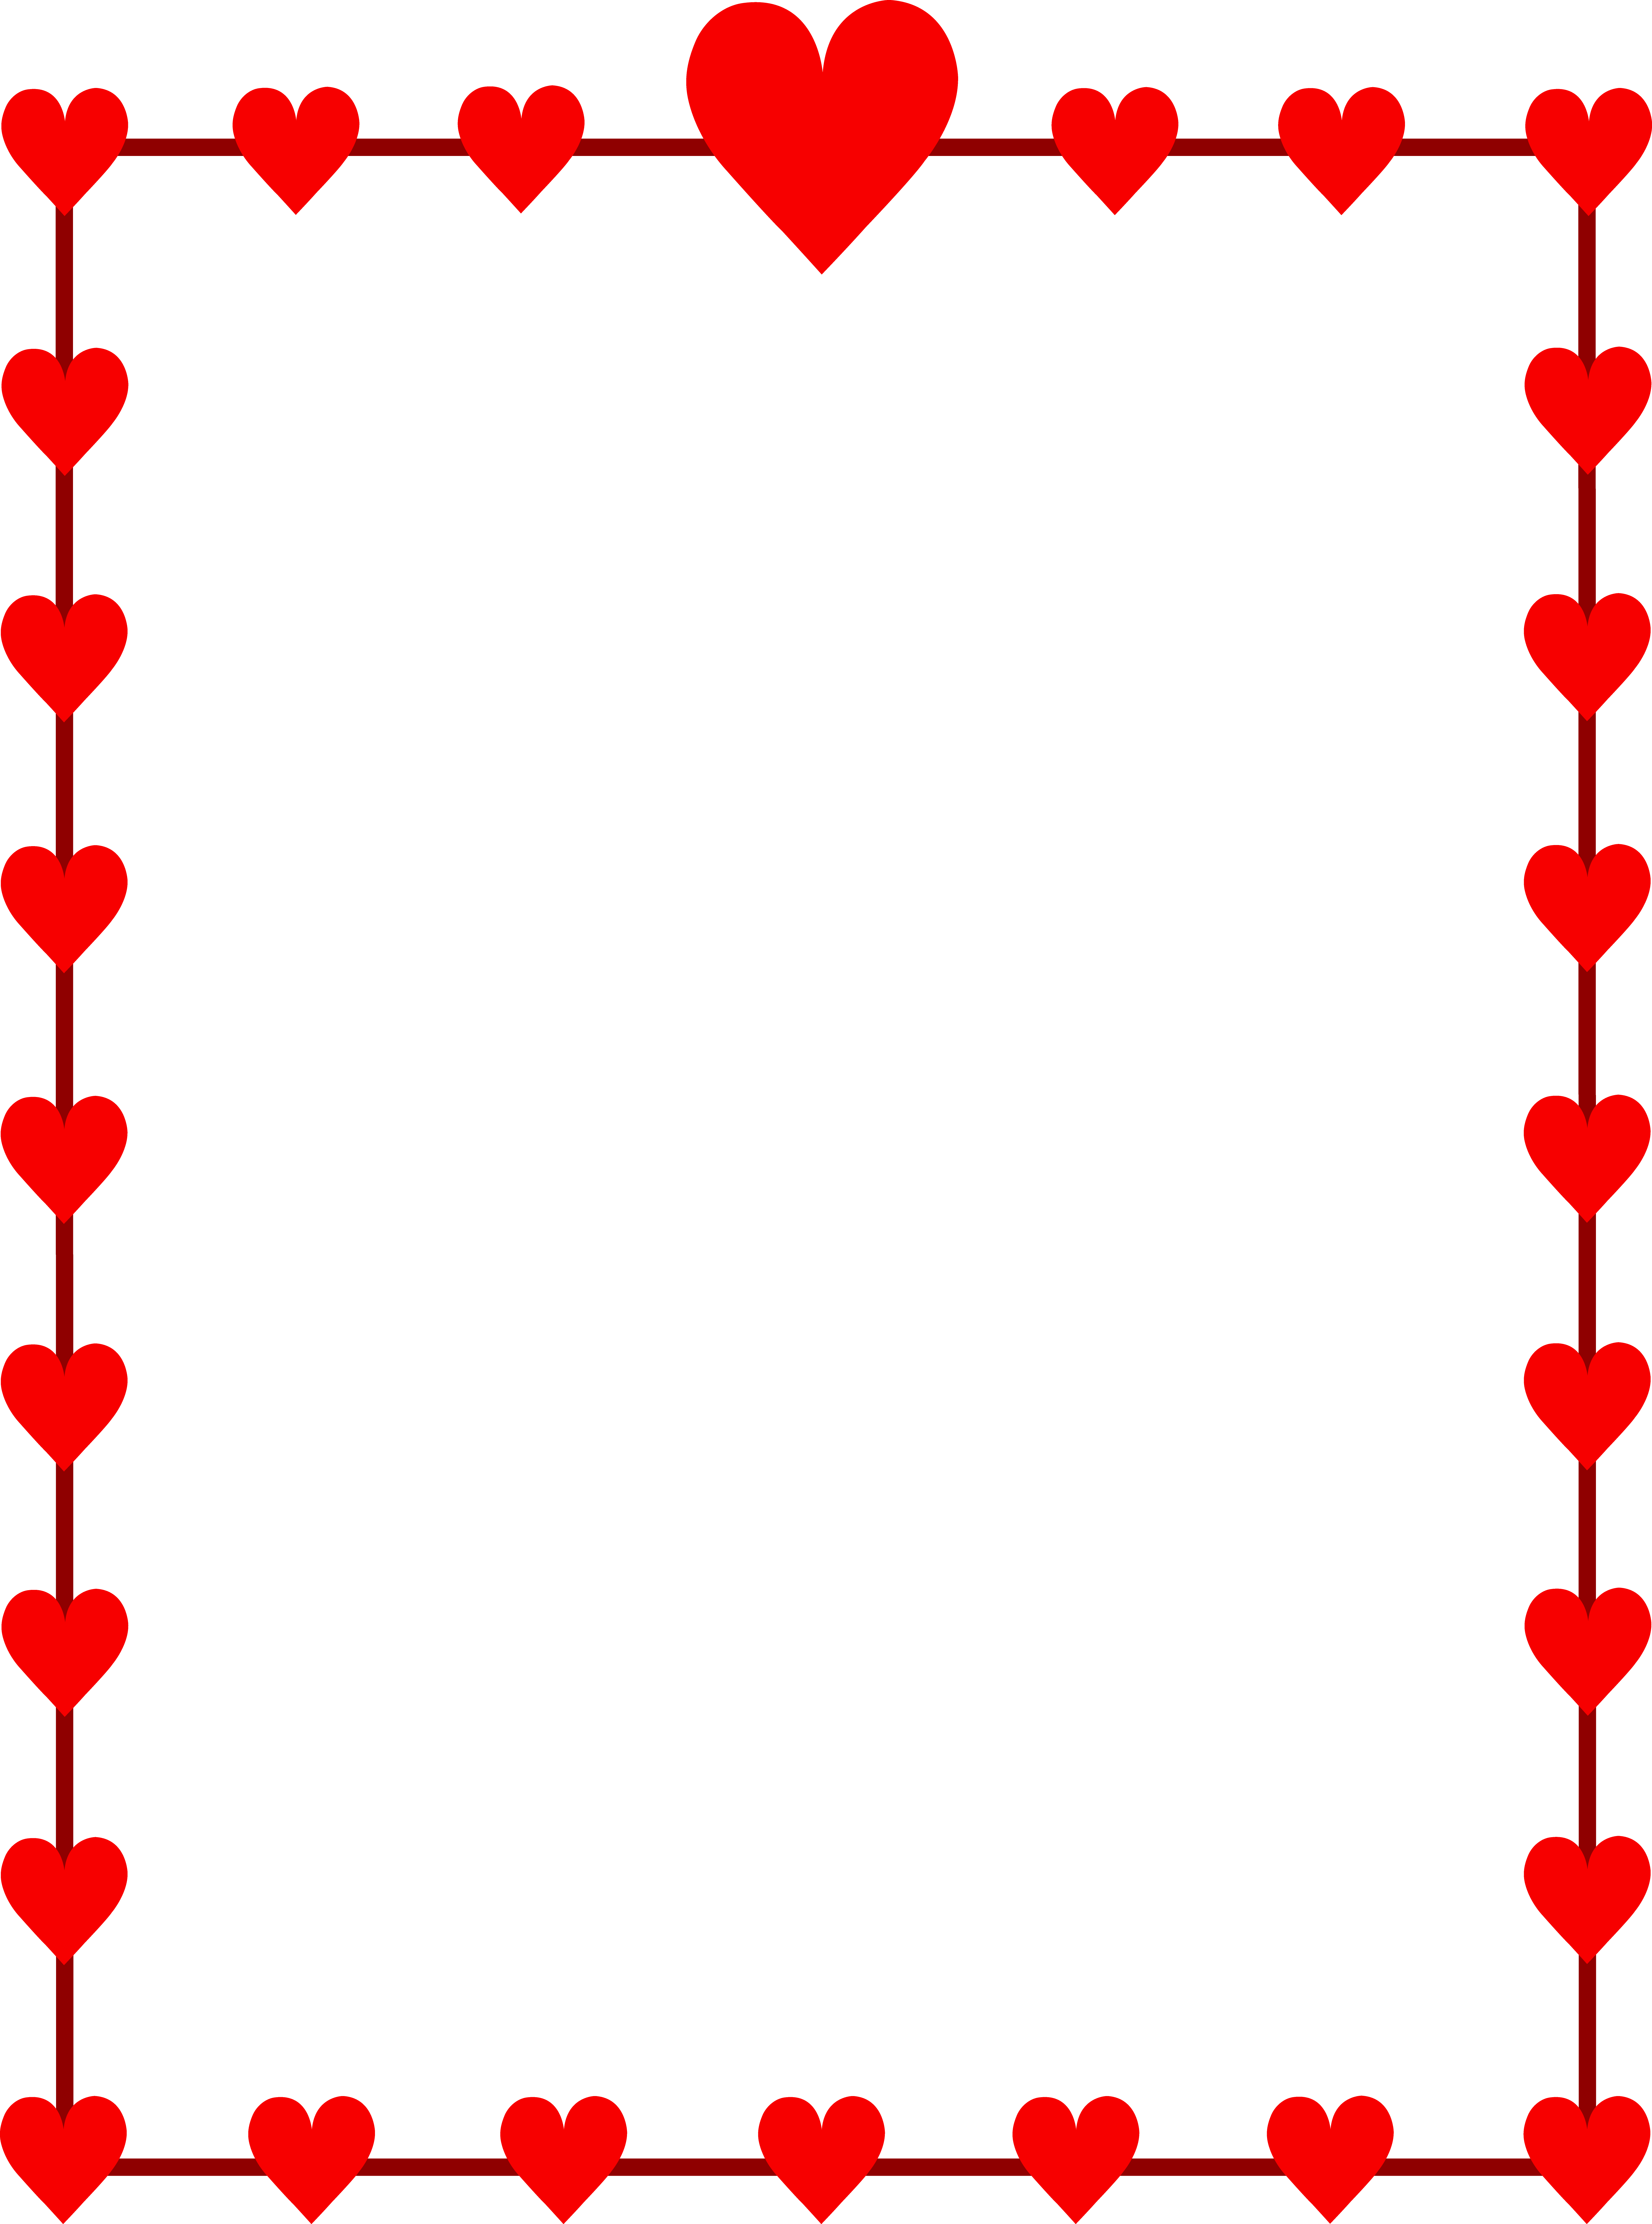 Hearts Border Clipart | Clipart Panda - Free Clipart Images